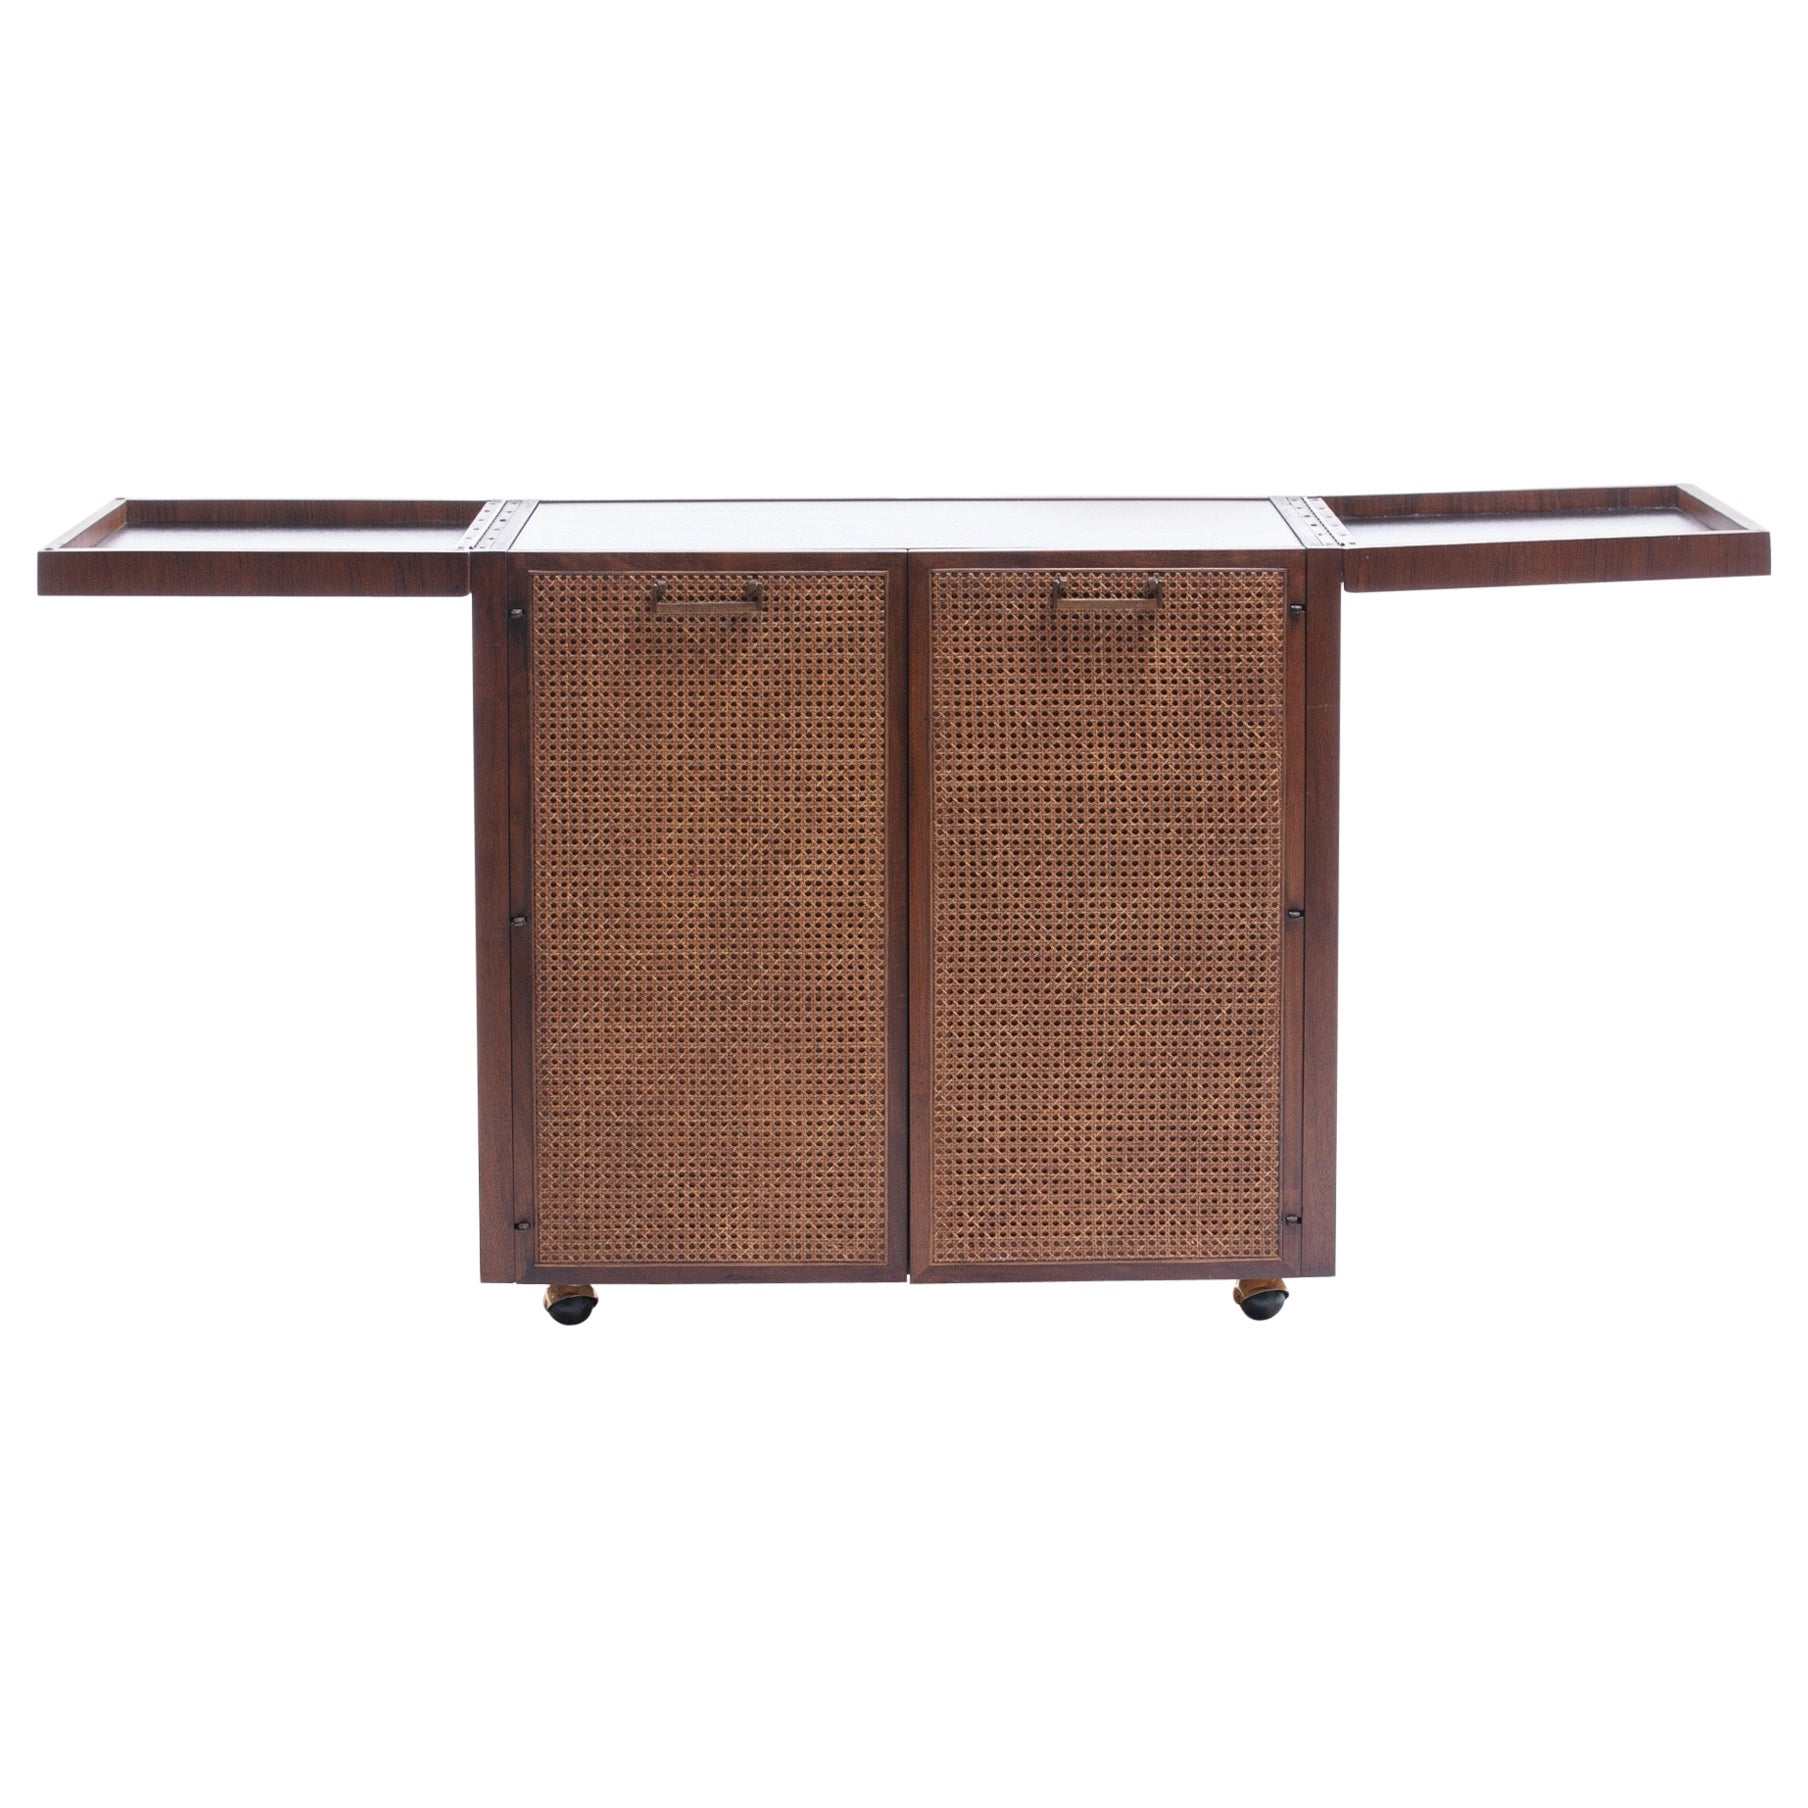 Mid-Century Modern Rosewood Bar Serving Cart by Jack Cartwright for Founders